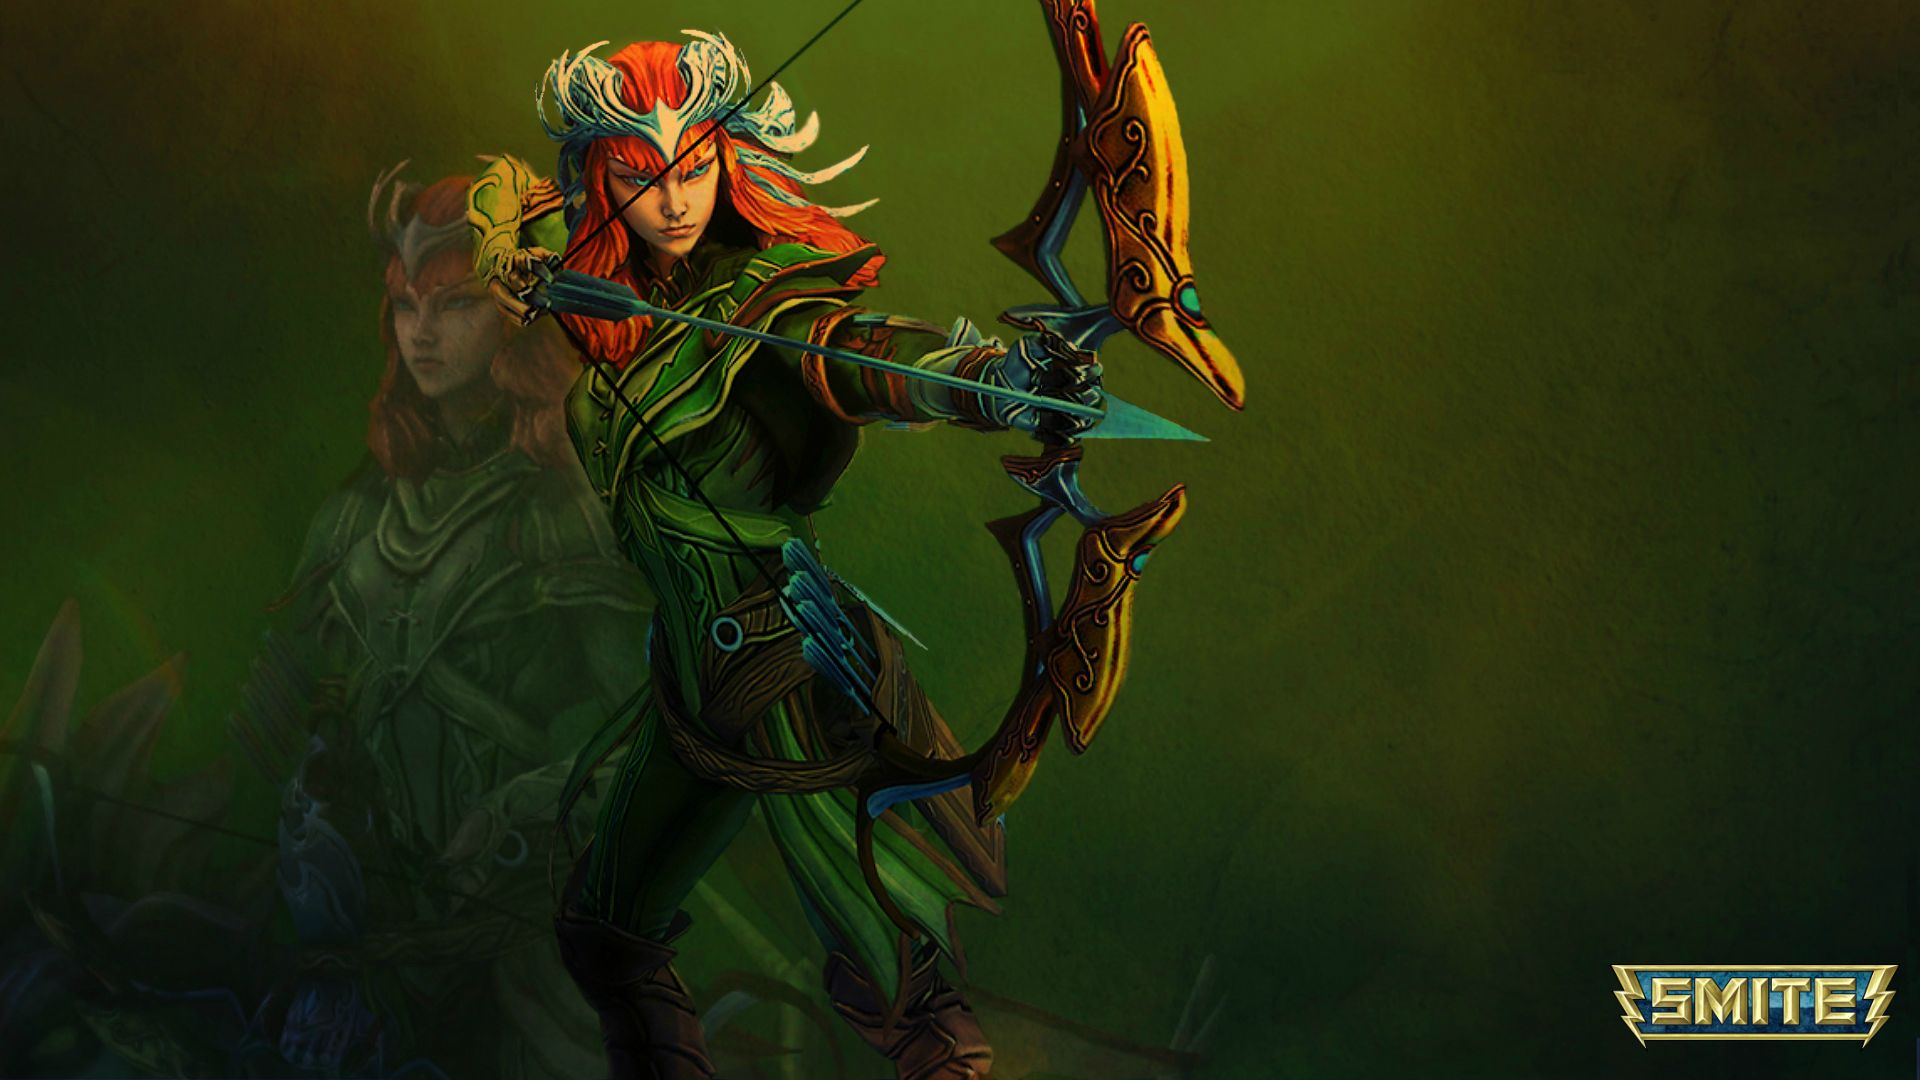 SMITE]   Smite Artwork Vault F4 Gaming 1920x1080